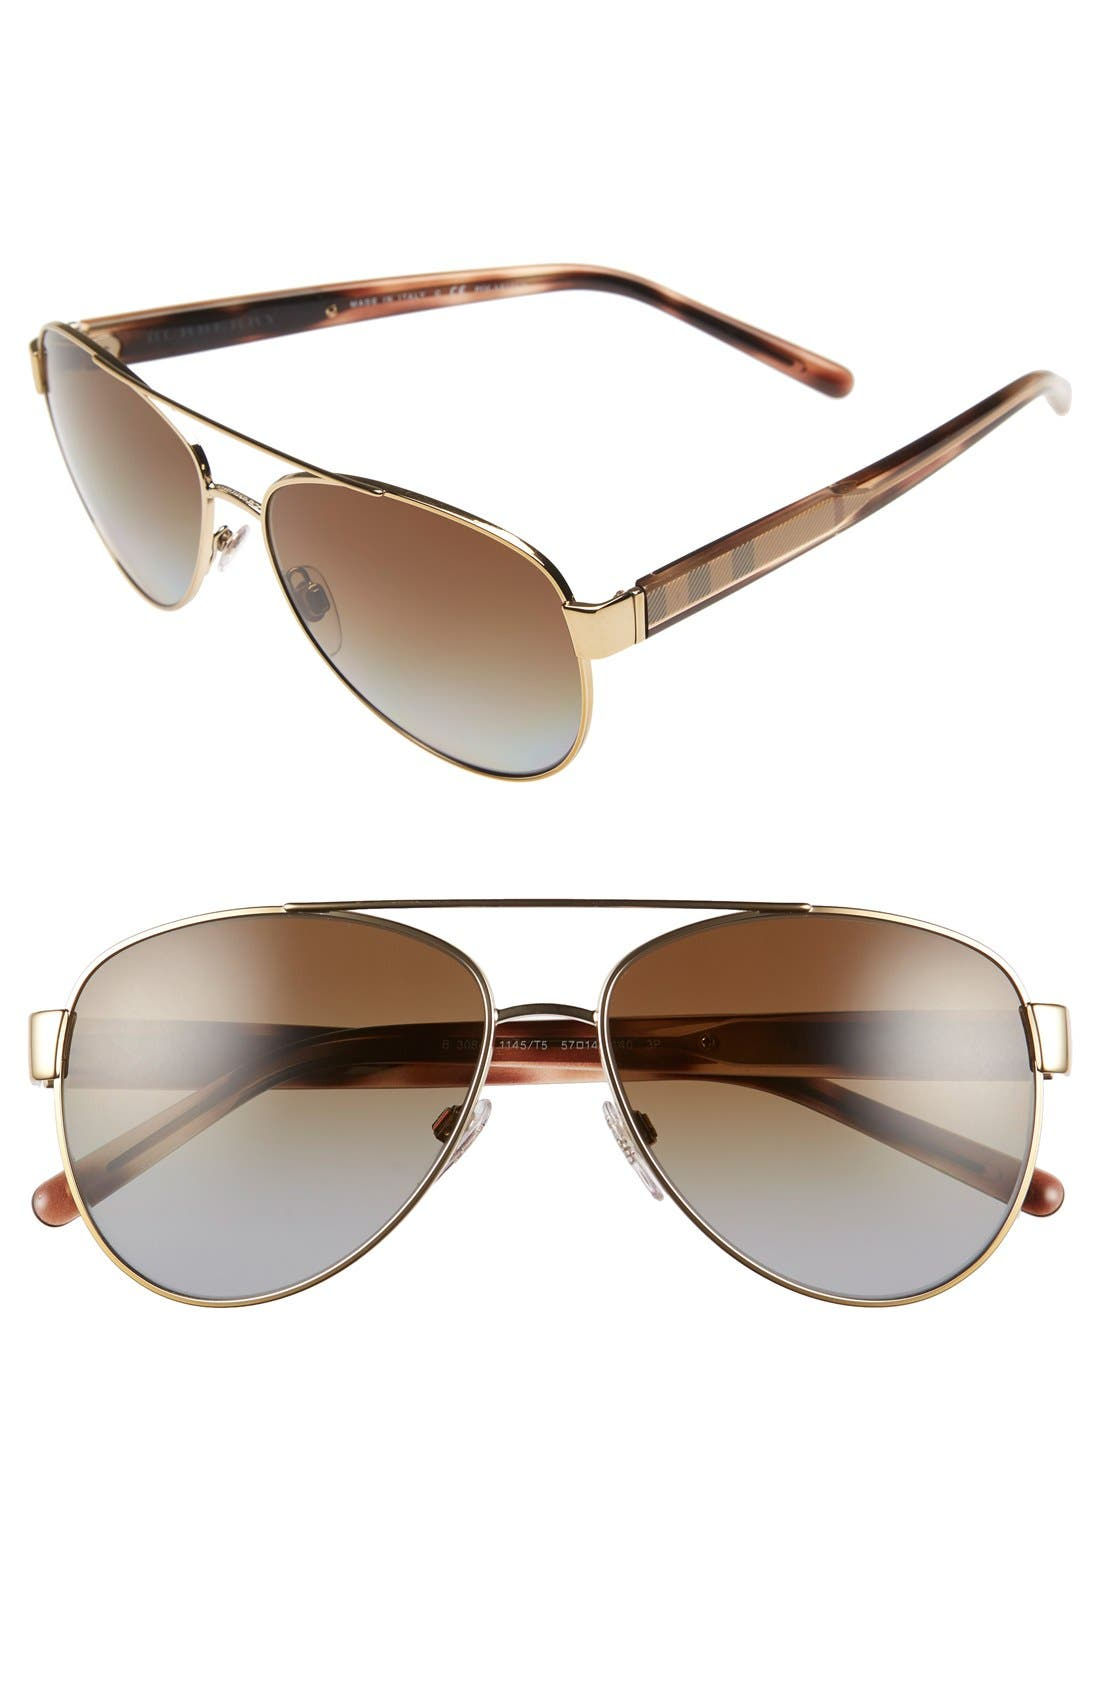 Burberry 57mm Polarized Aviator Sunglasses